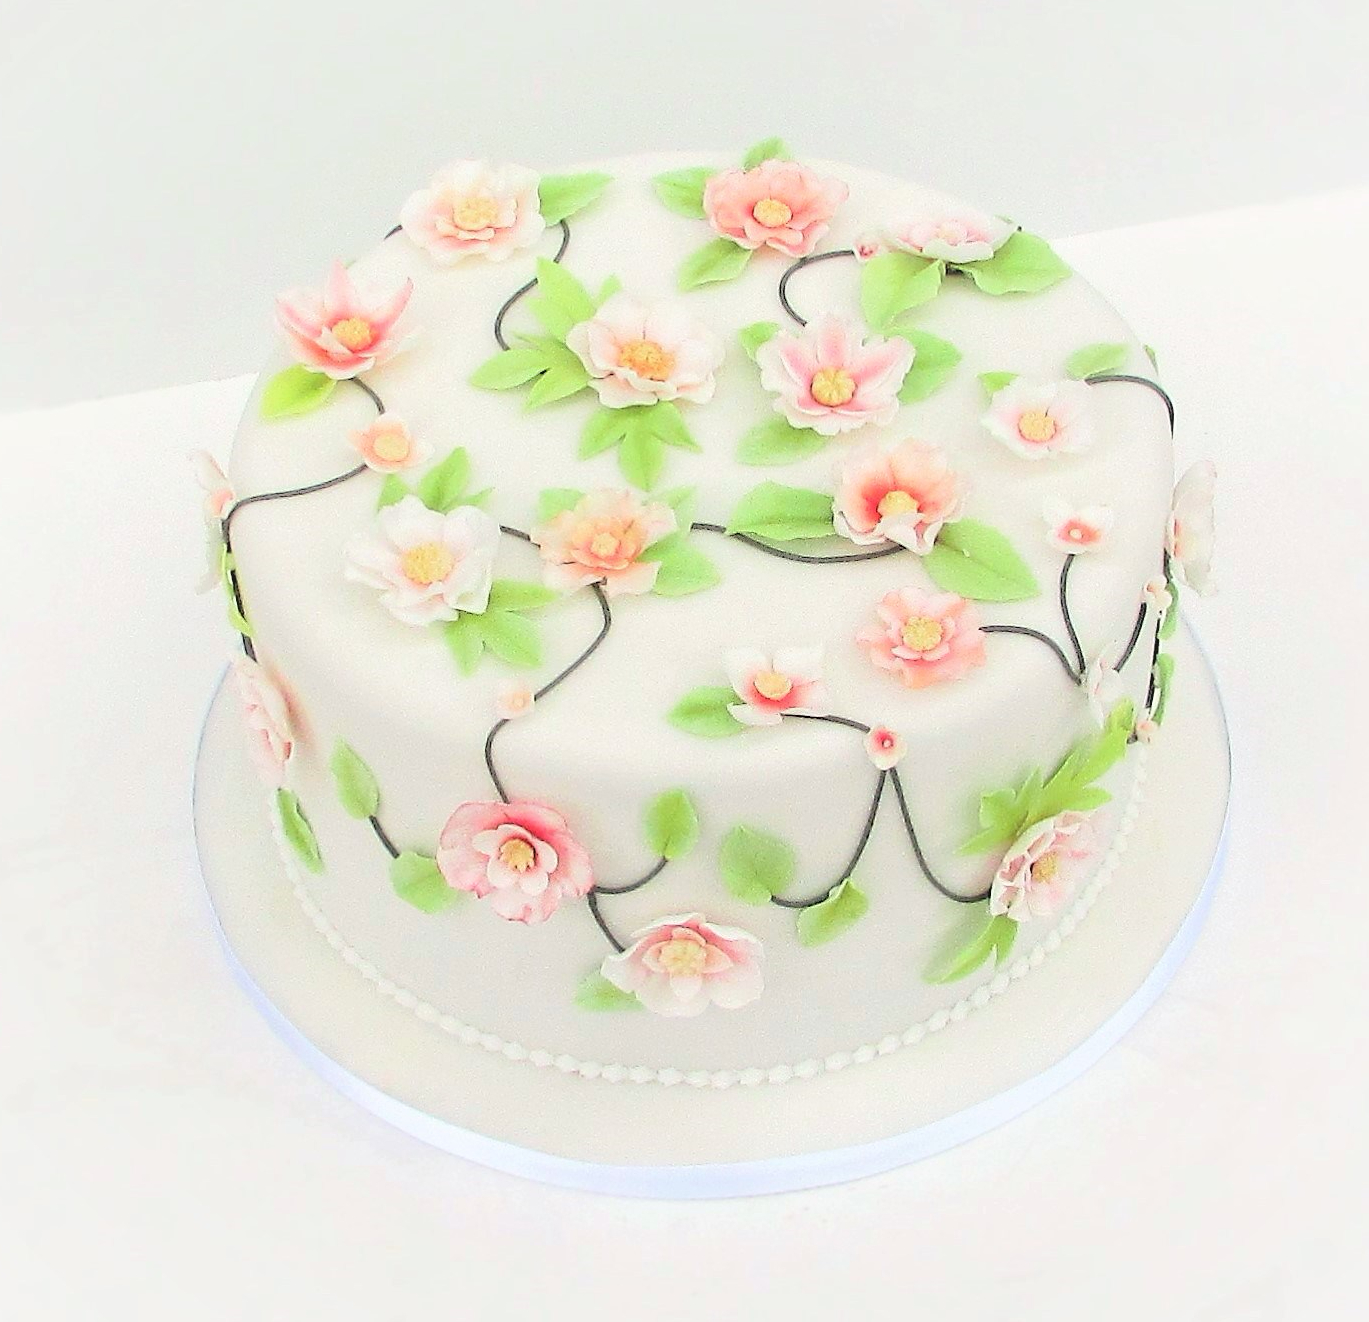 White party cake with pale pink flowers and green leaves